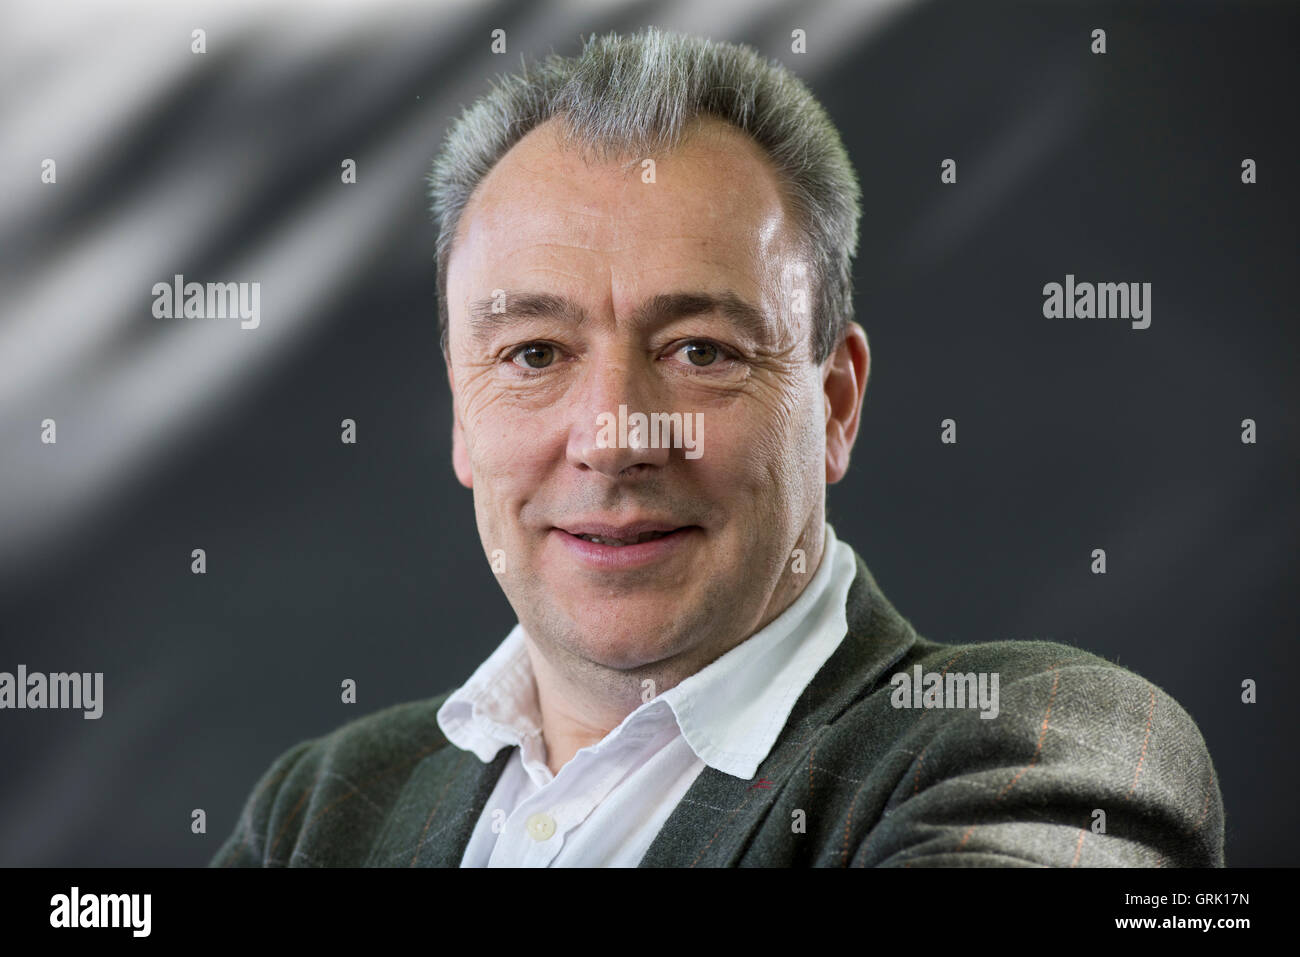 Scottish Poet Jim Carruth. - Stock Image